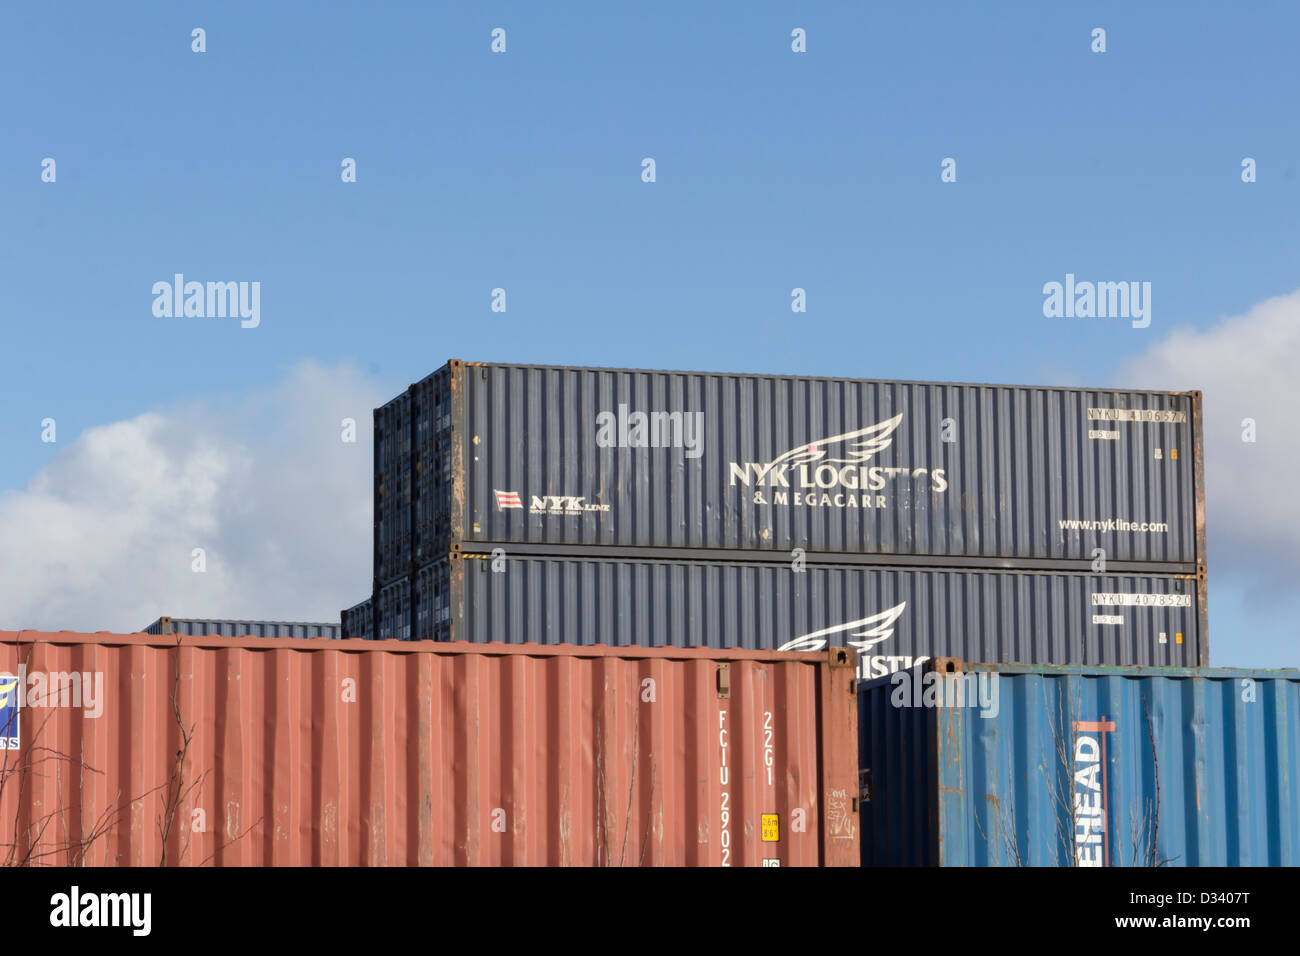 NYK Logistics intermodal shipping containers at the Barton Dock Road container terminal on Trafford Park, Manchester. - Stock Image